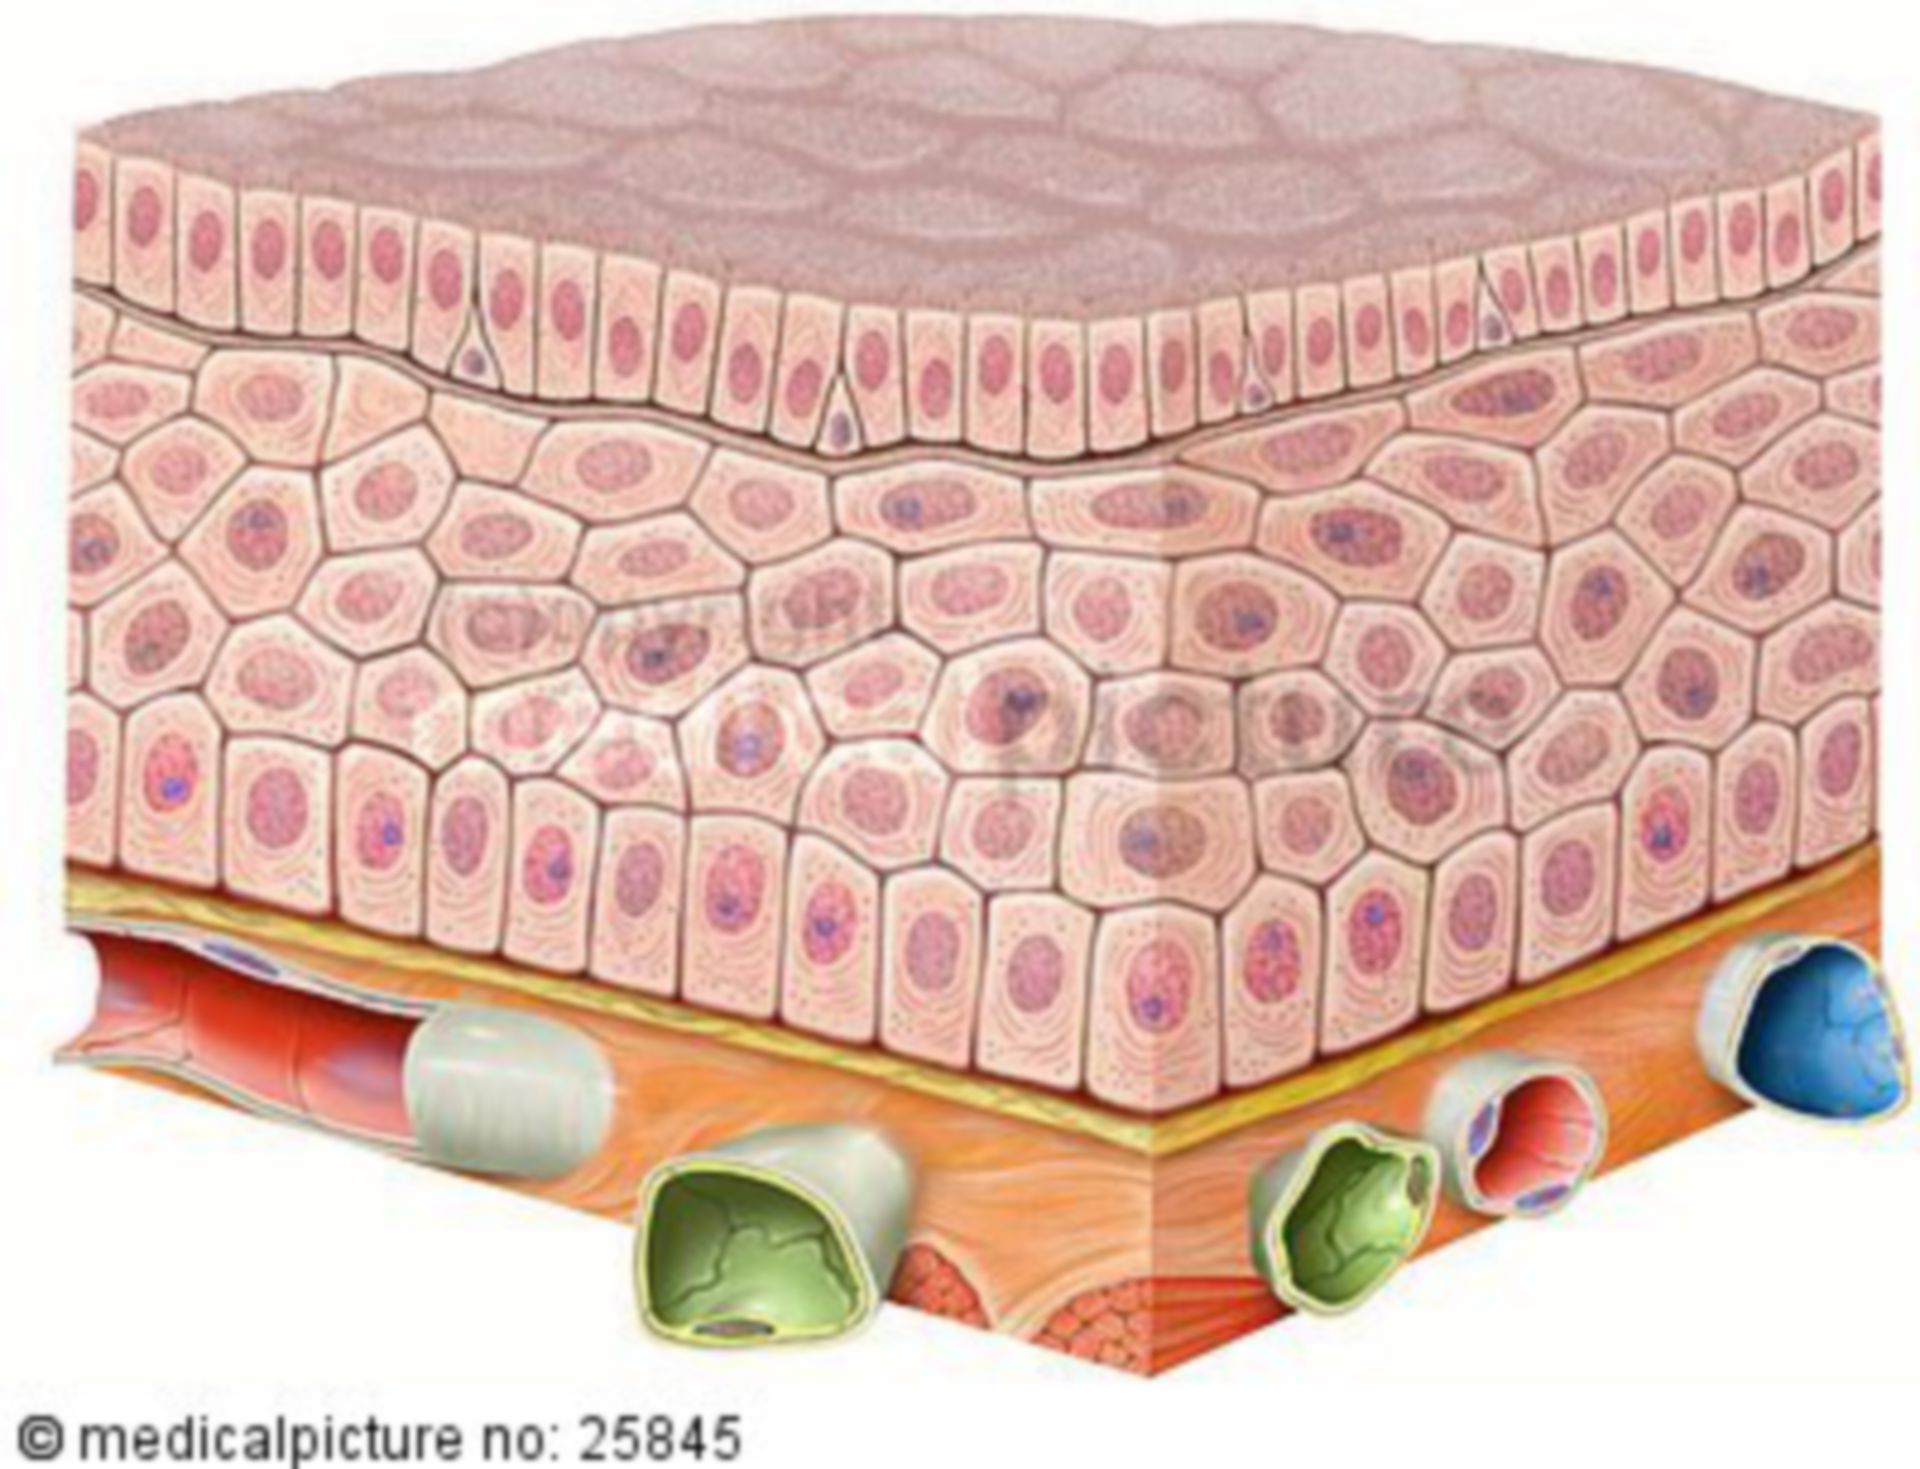 Respiratory epithelium with cilia and vessels